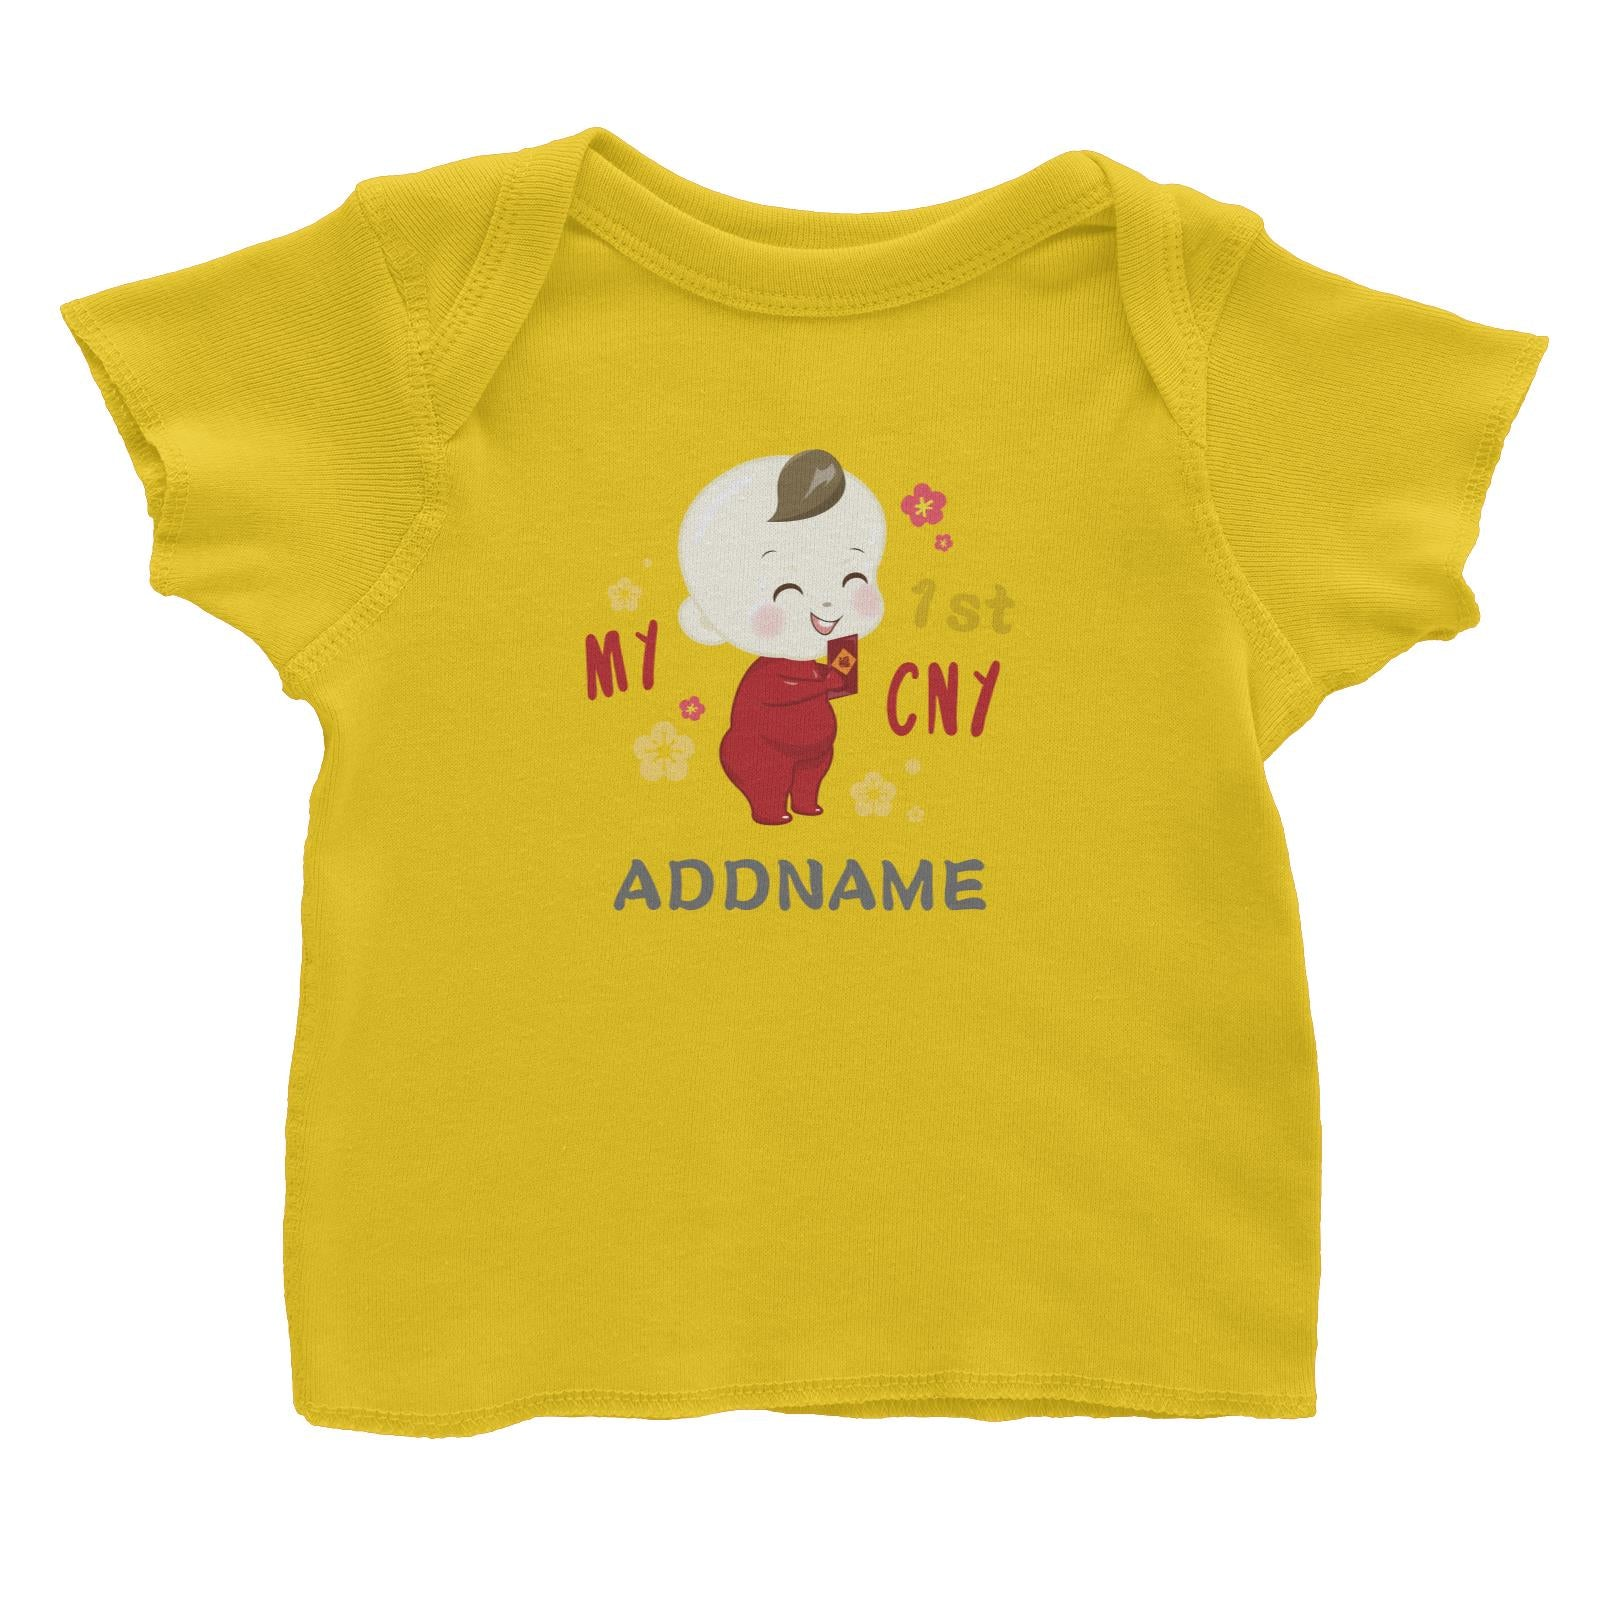 Chinese New Year Family My 1st CNY Baby Boy Addname Baby T-Shirt